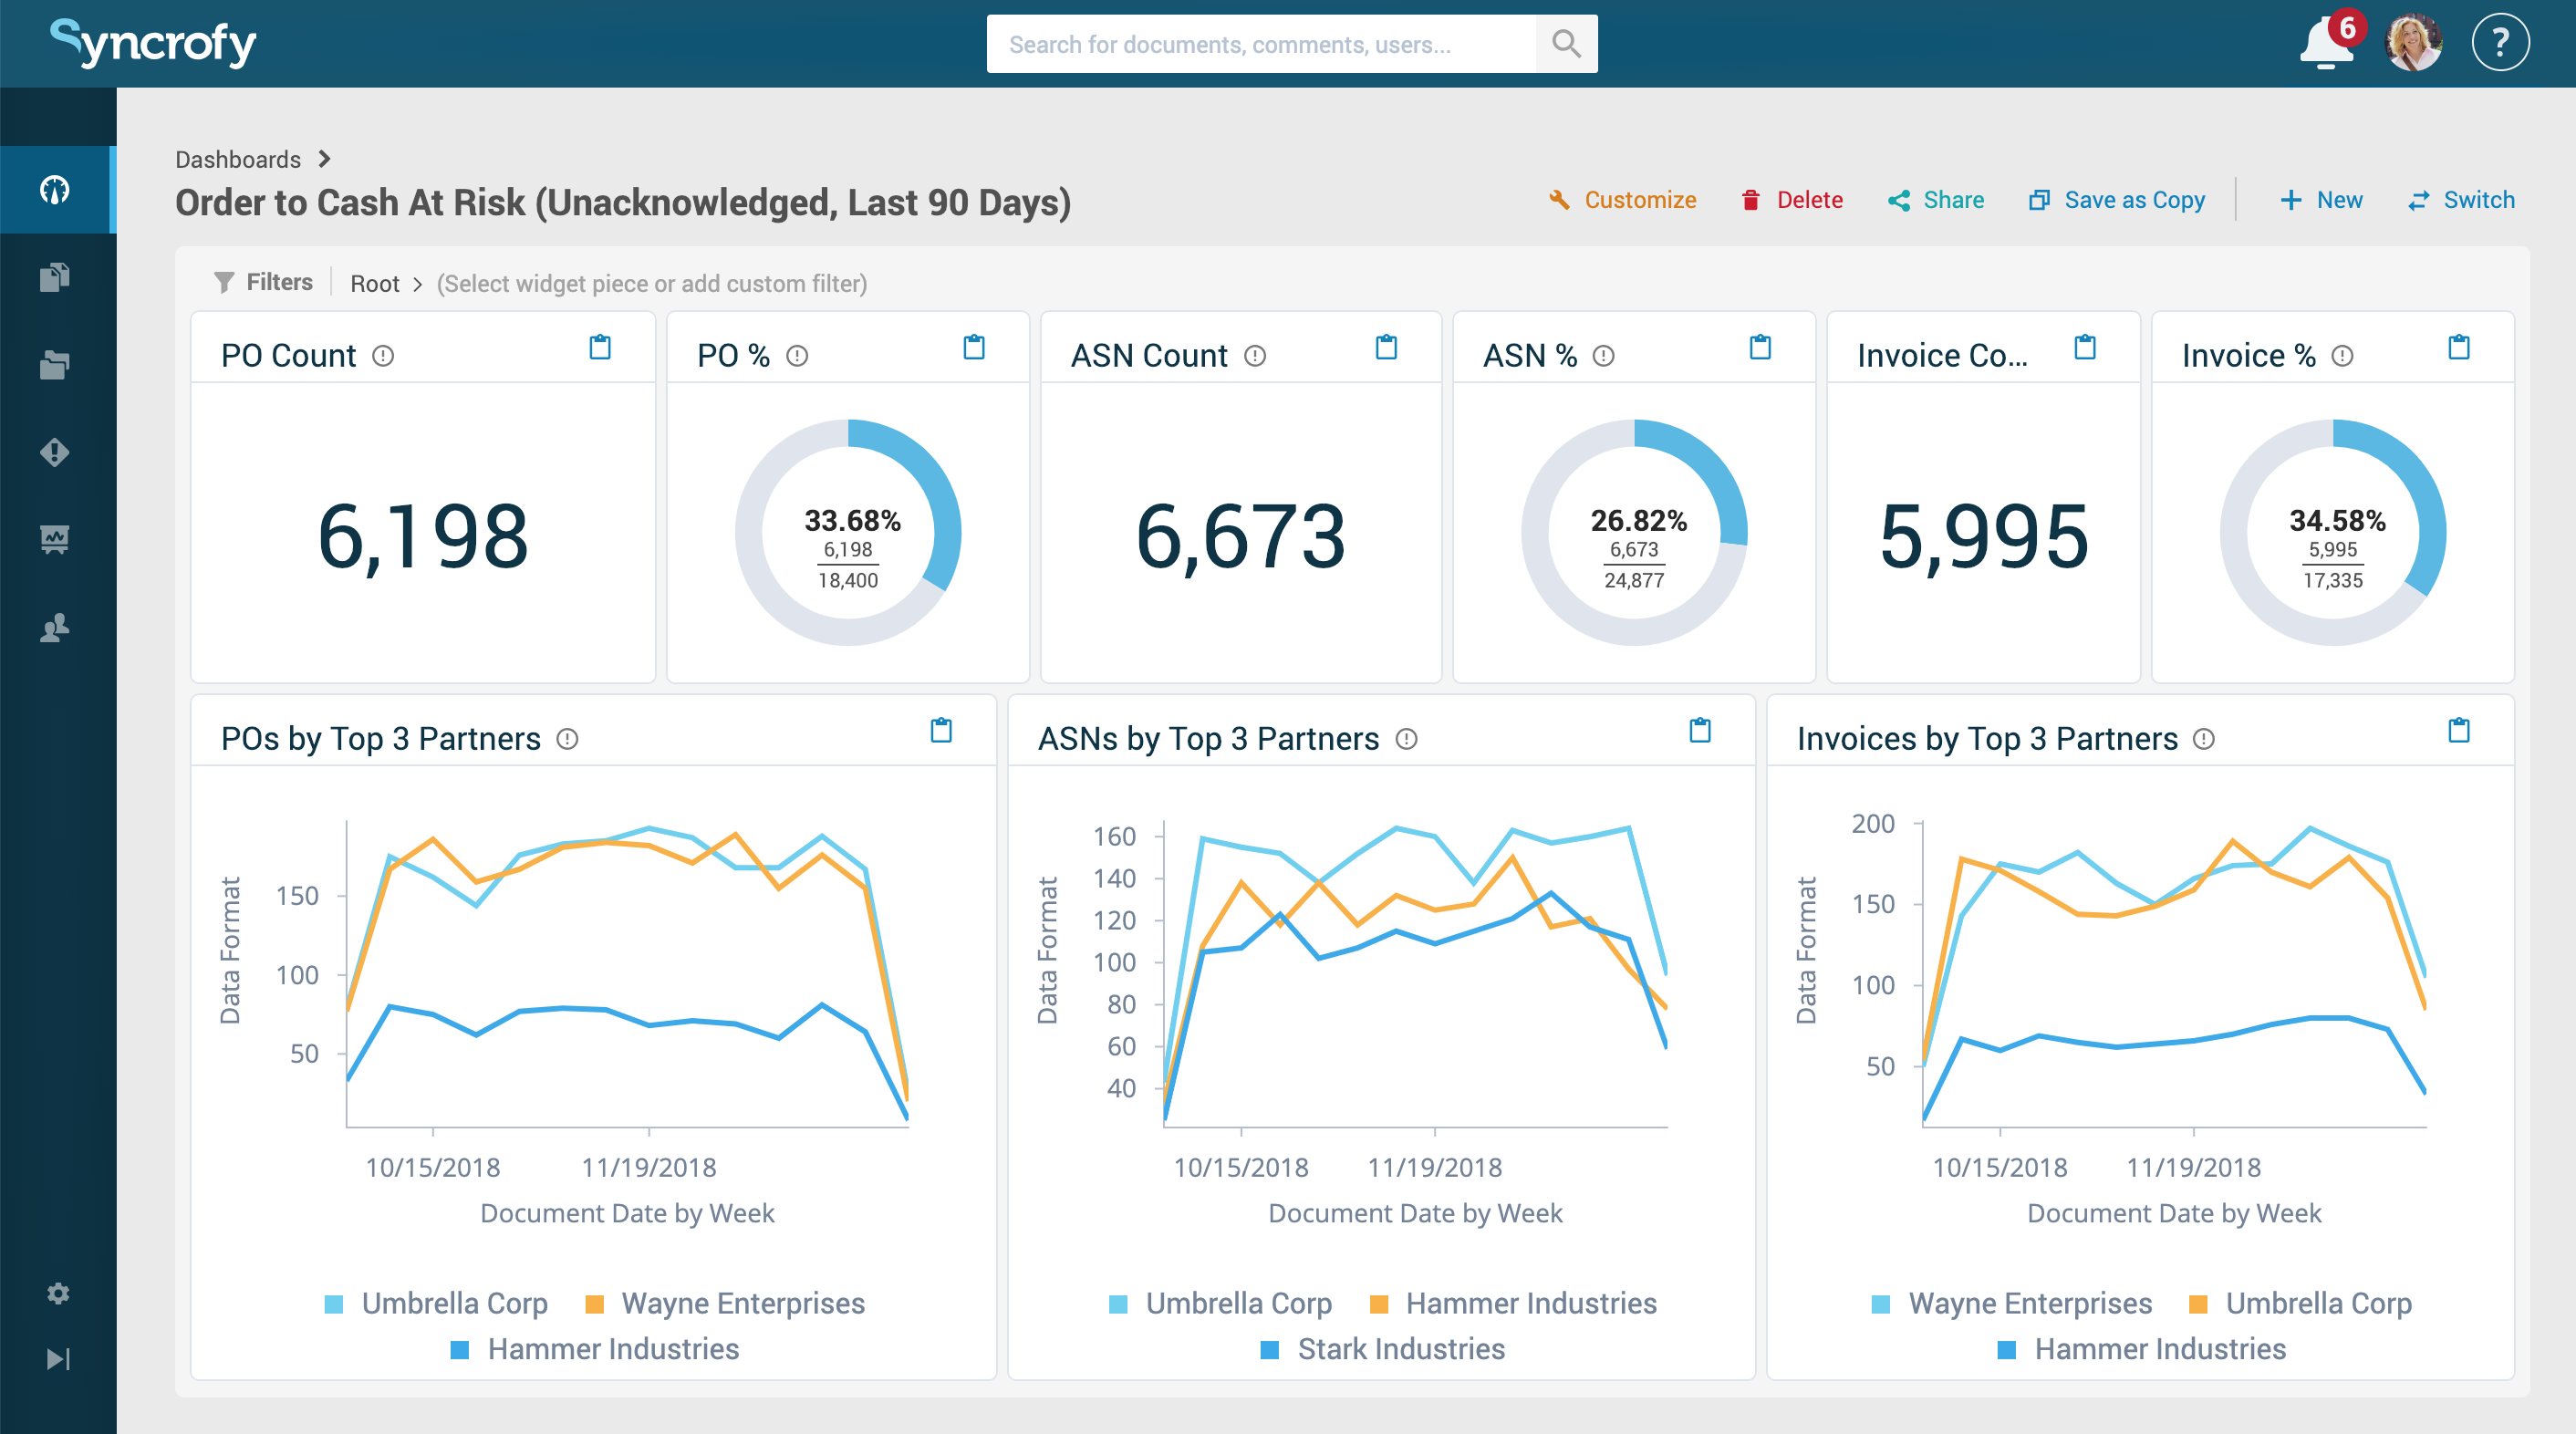 Syncrofy Help   Dashboards